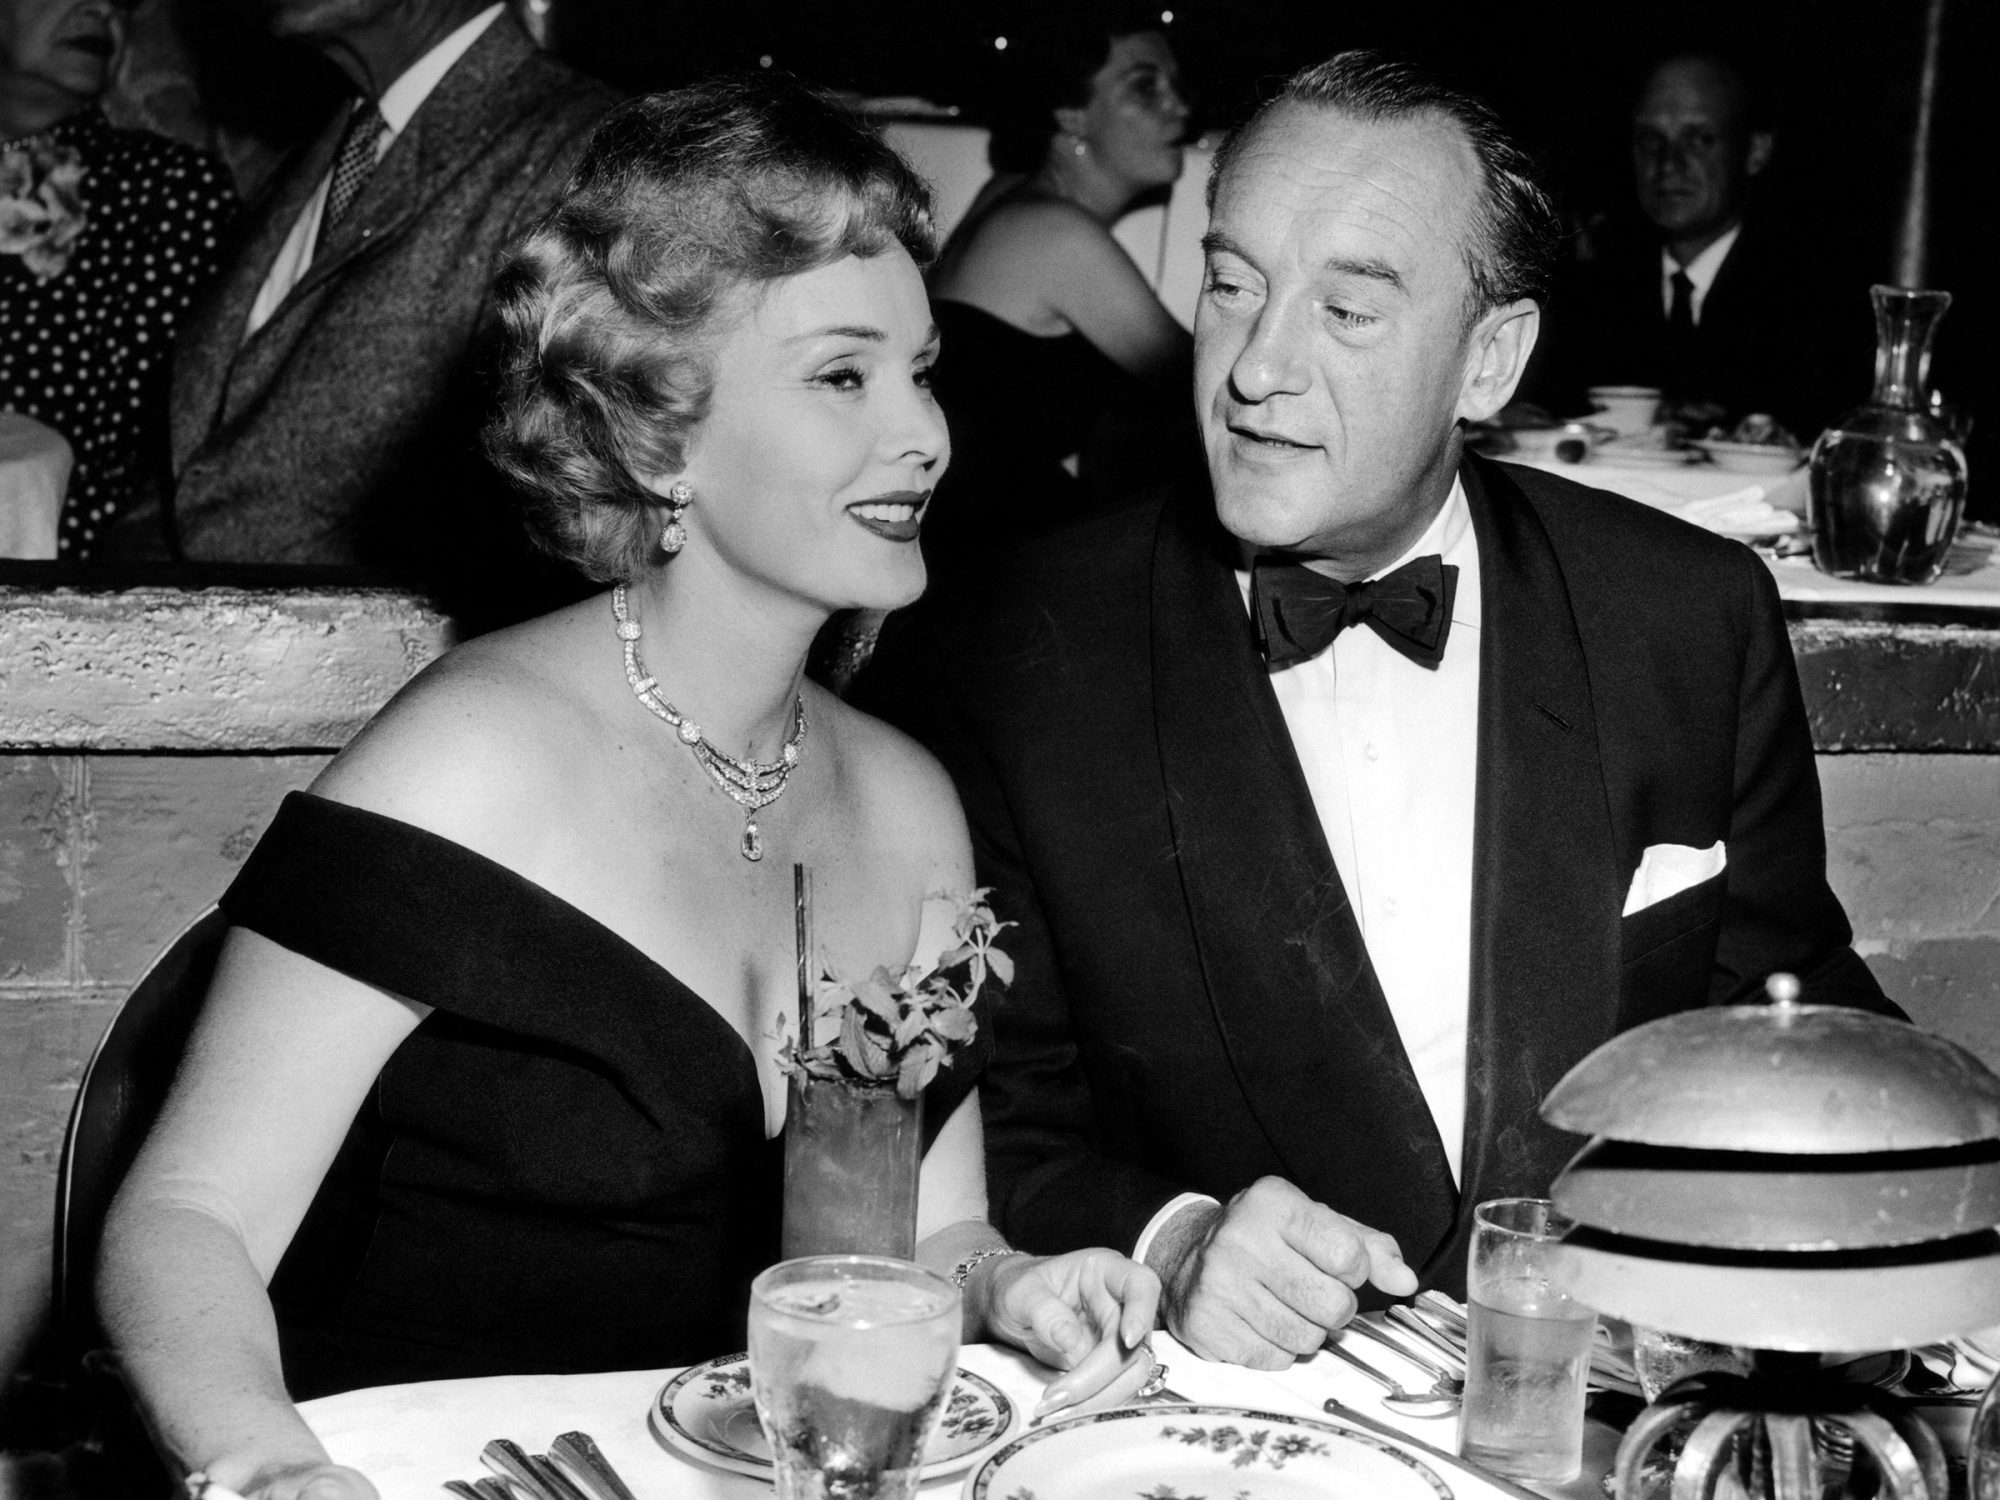 Zsa Zsa Gabor with husband, George Sanders, 1954